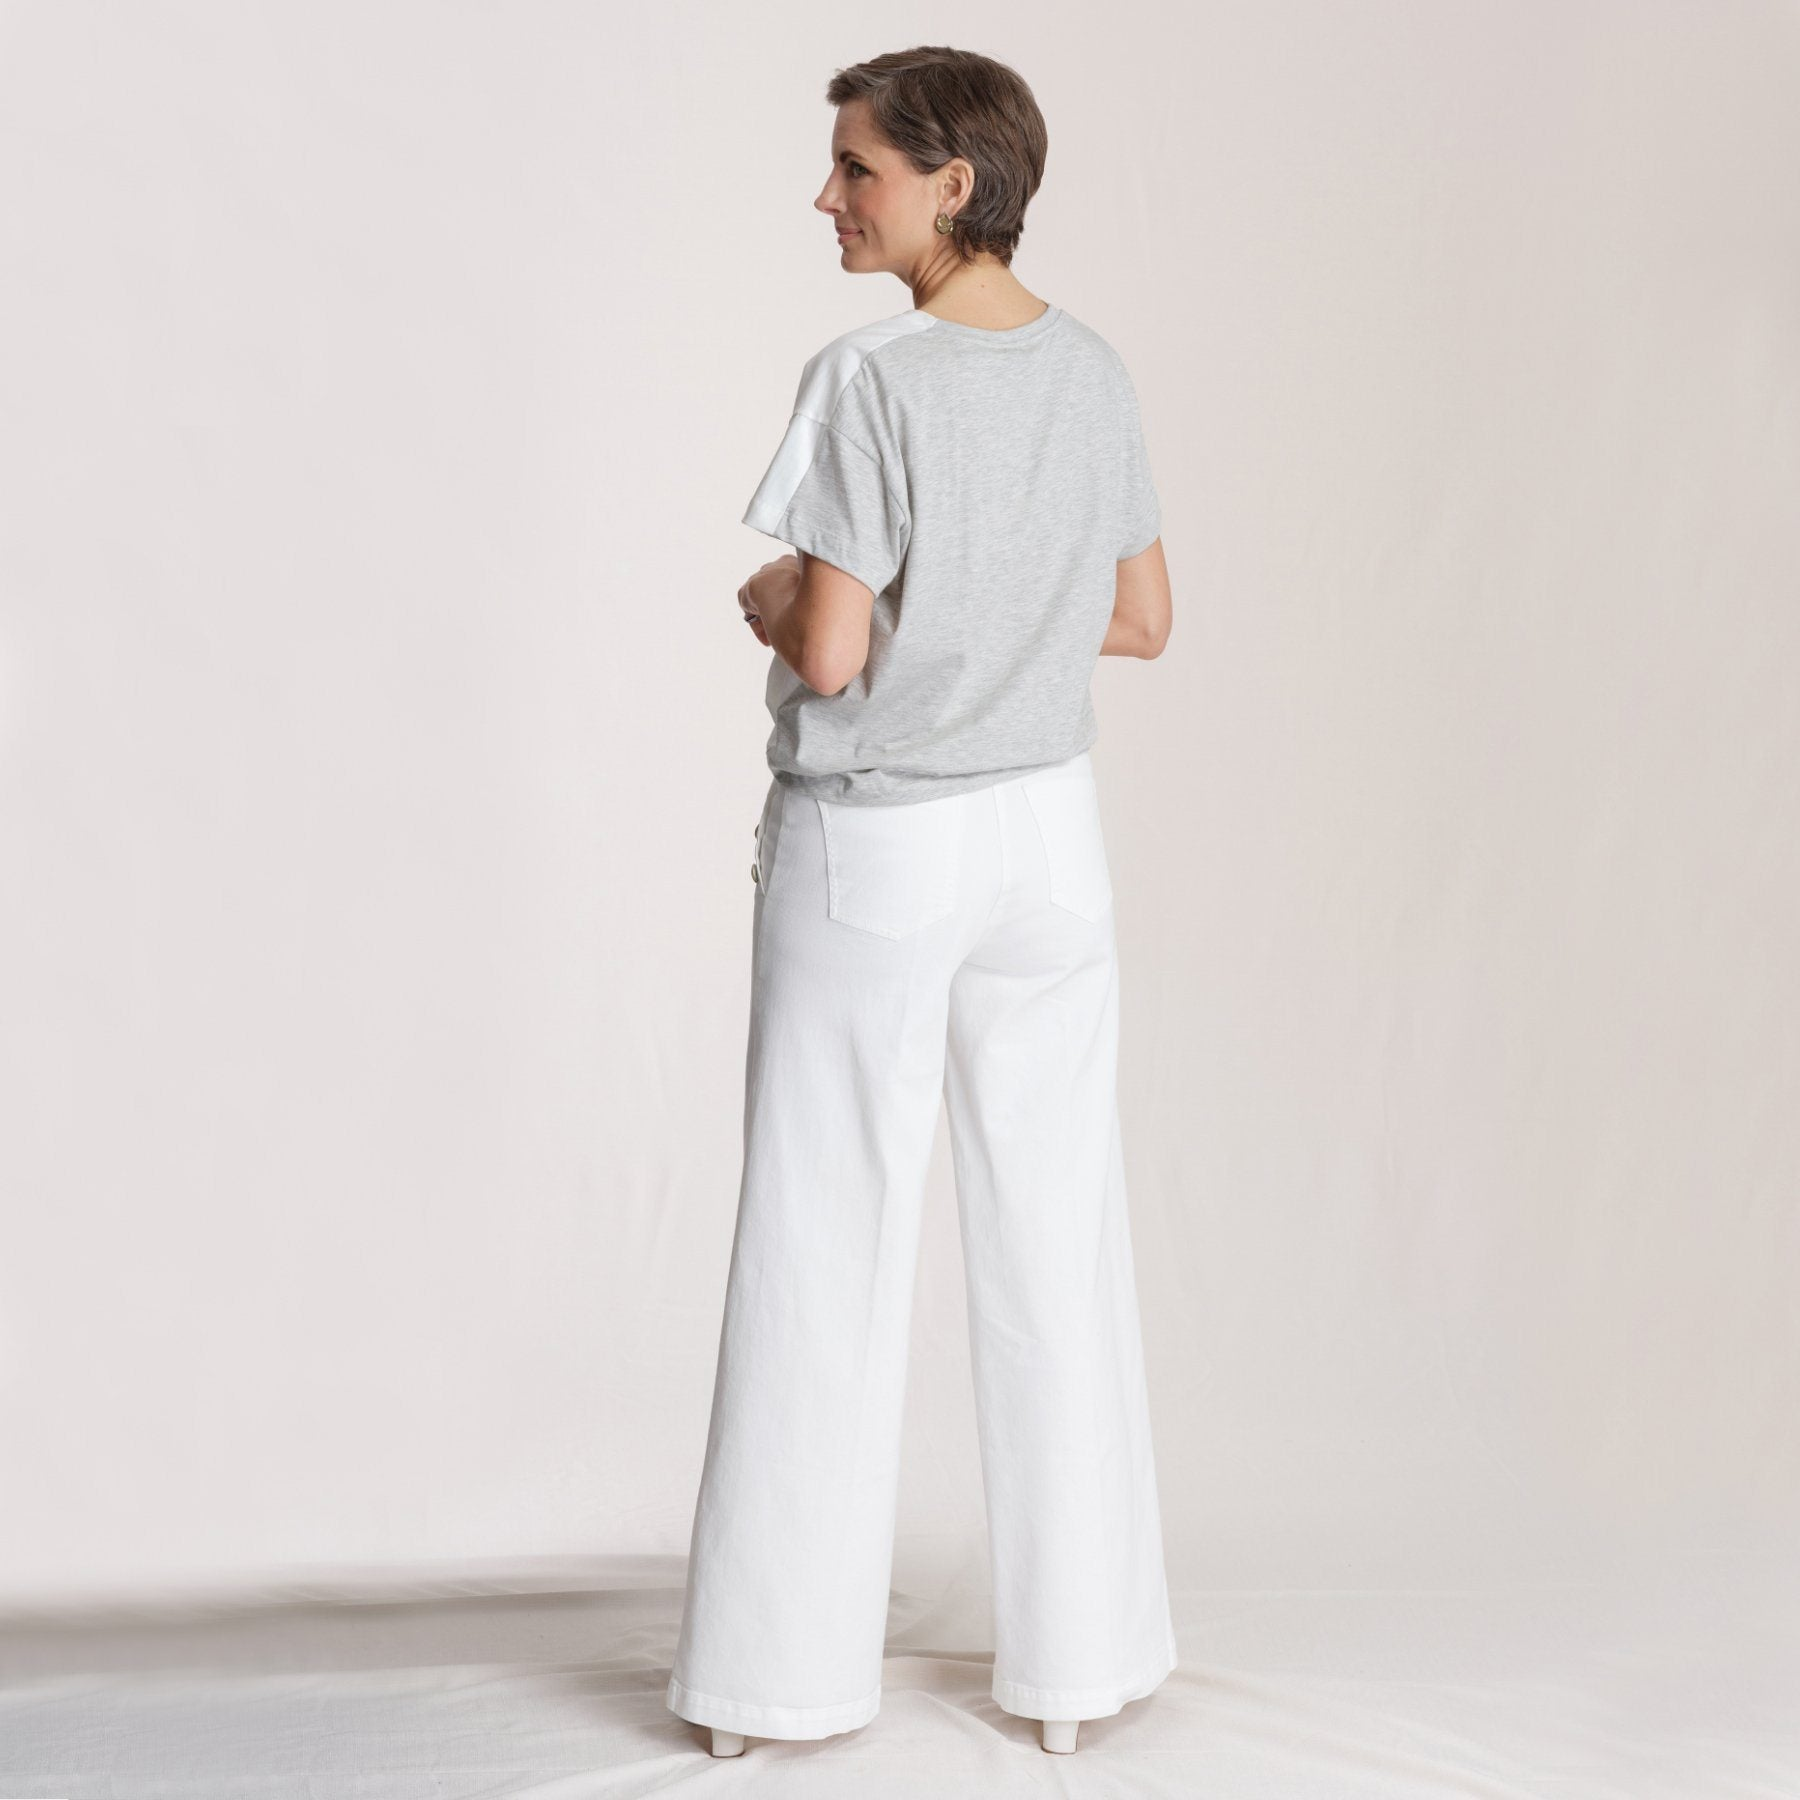 rear view woman wearing grey t shirt and white pants in front of white background